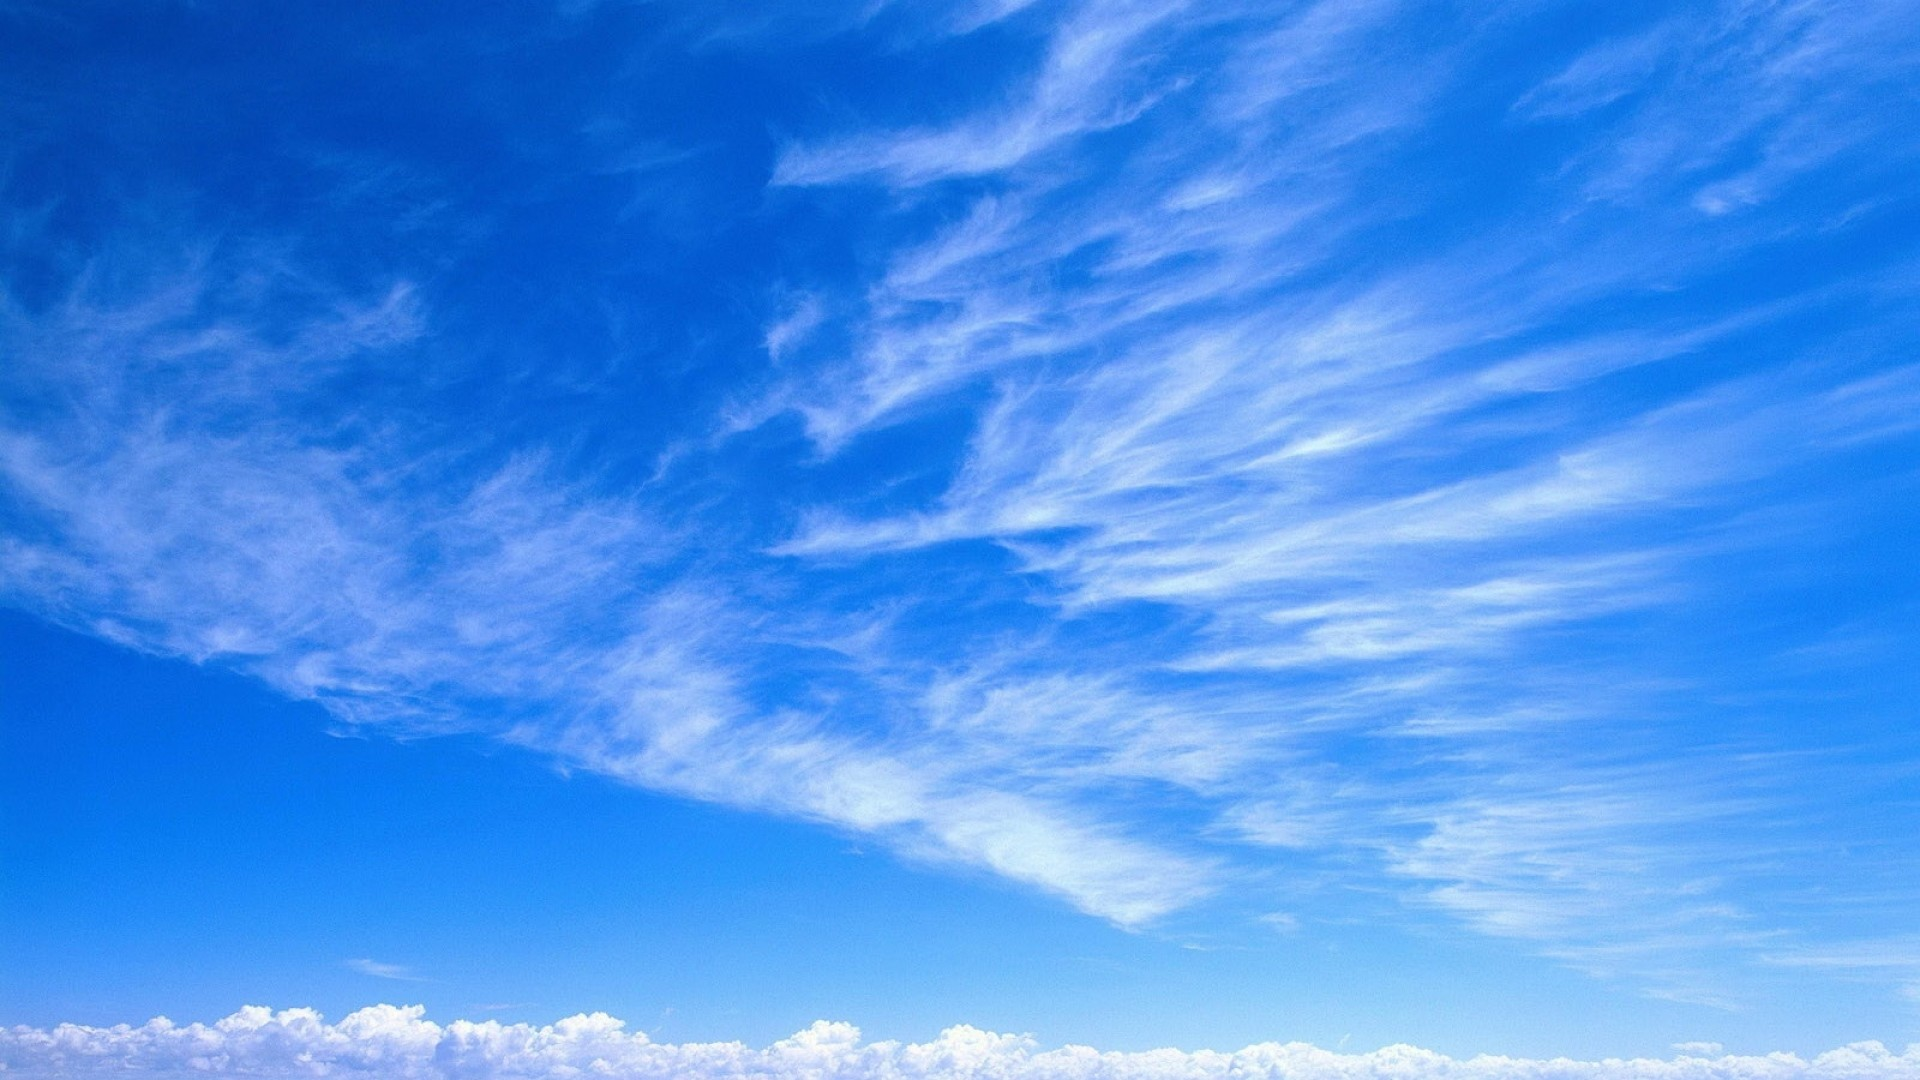 Wallpaper sky, blue, white, clouds, tenderness